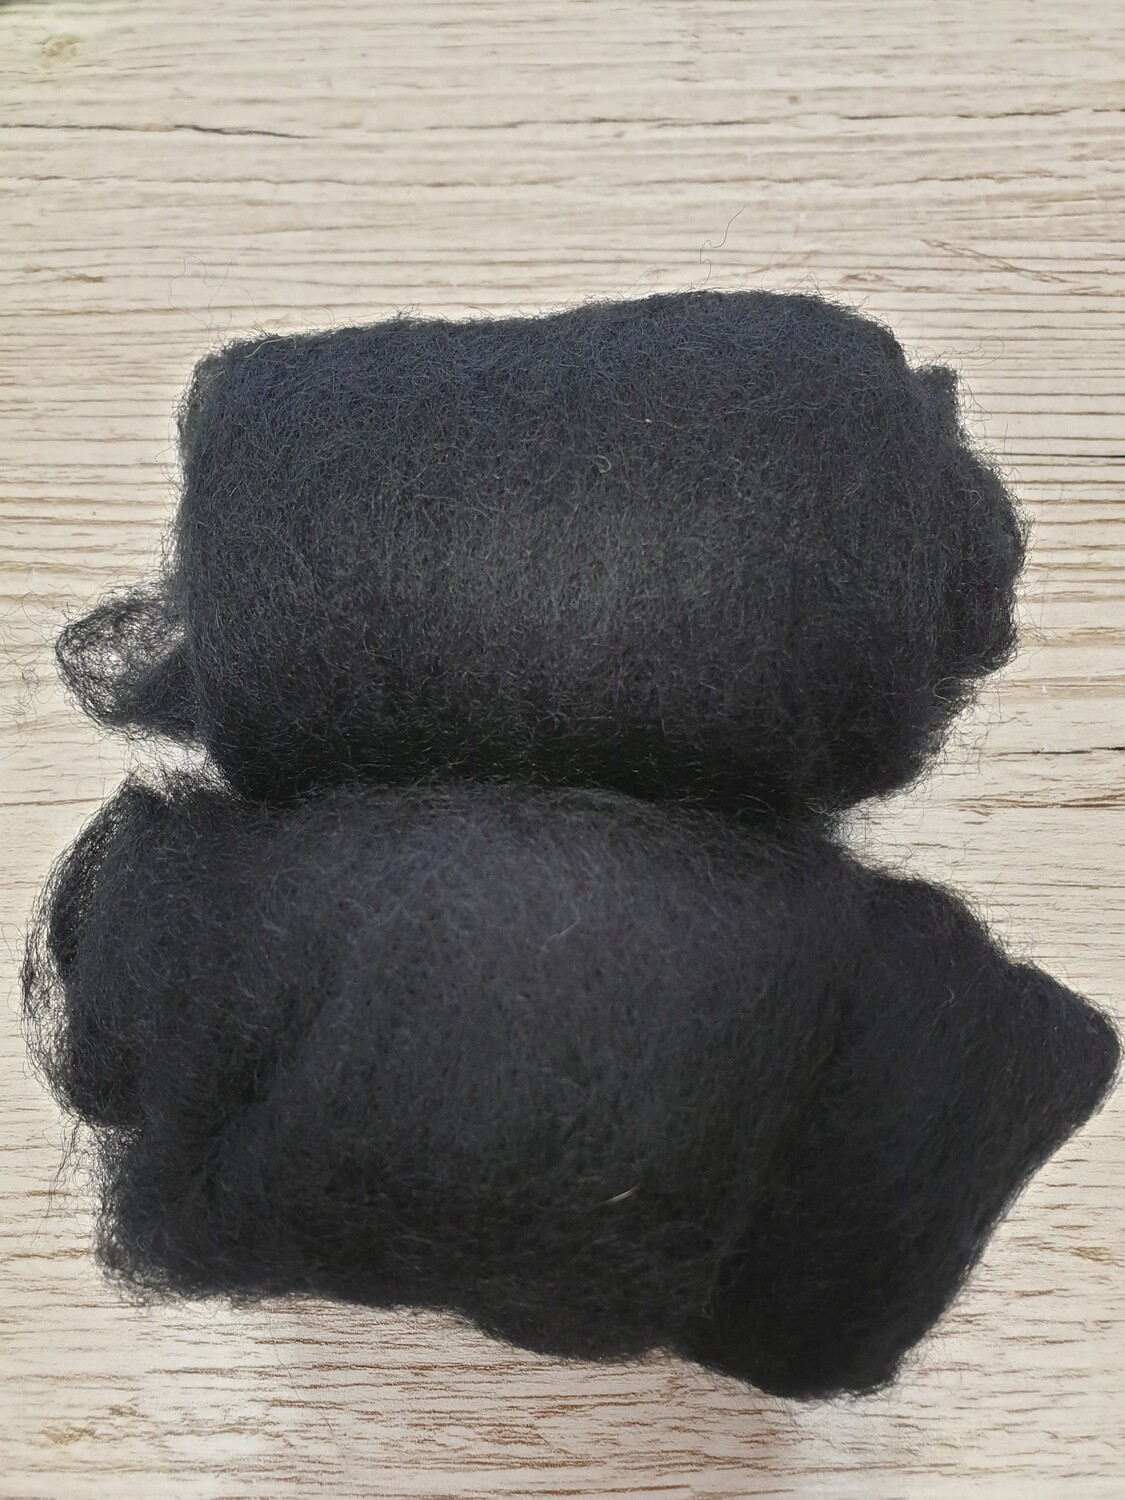 Carded Felting Wool  20 g - Black